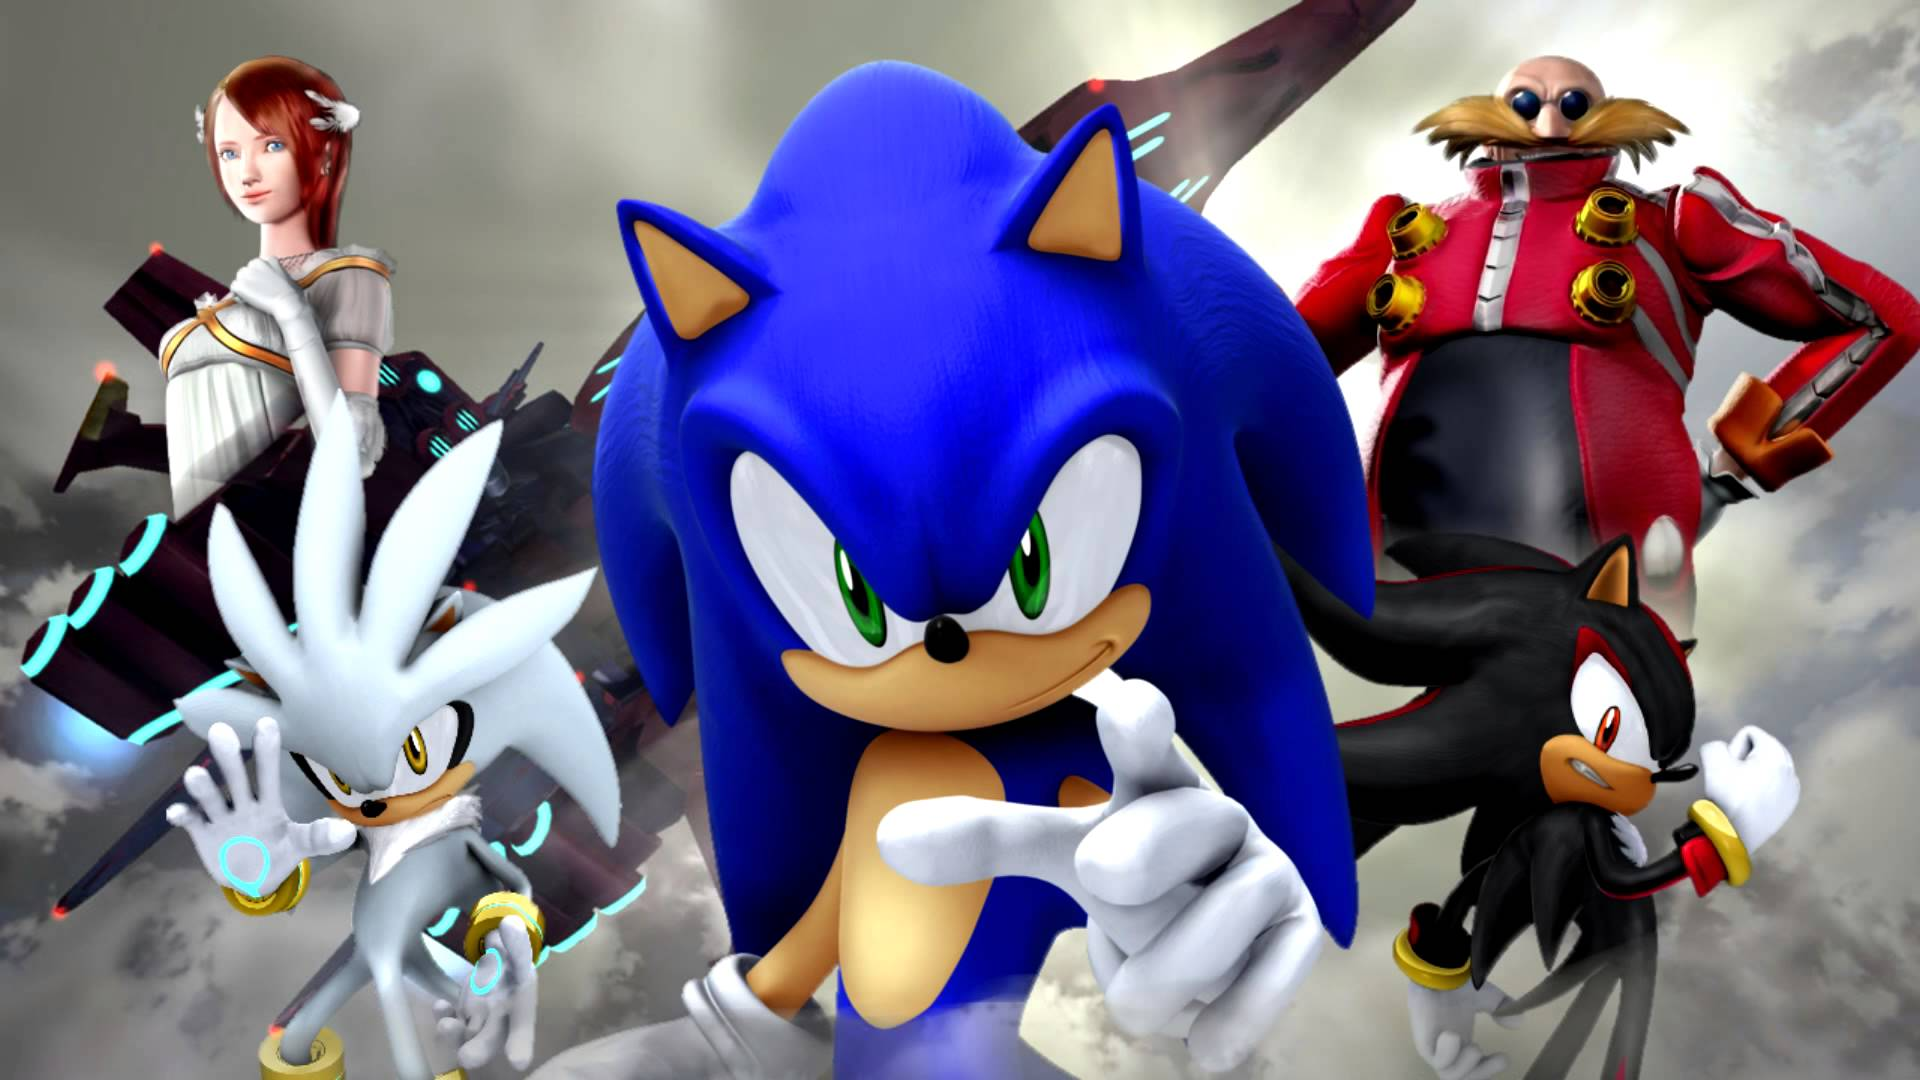 Sonic The Hedgehog Design From Upcoming Movie May Have Possibly Leaked